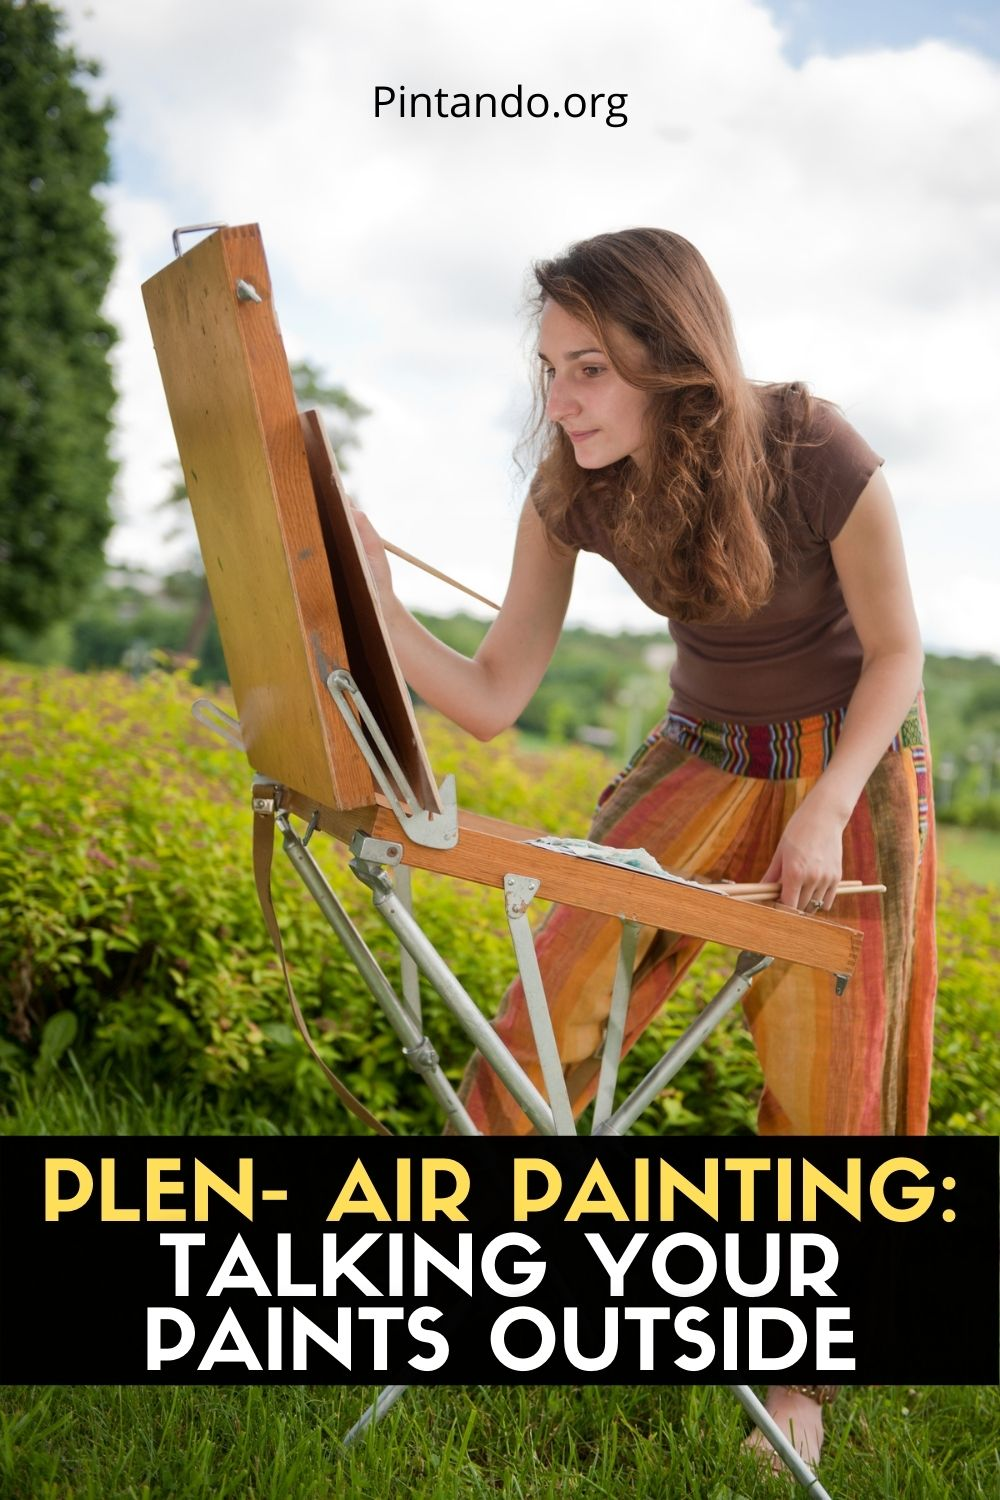 PLEN- AIR PAINTING TALKING YOUR PAINTS OUTSIDE